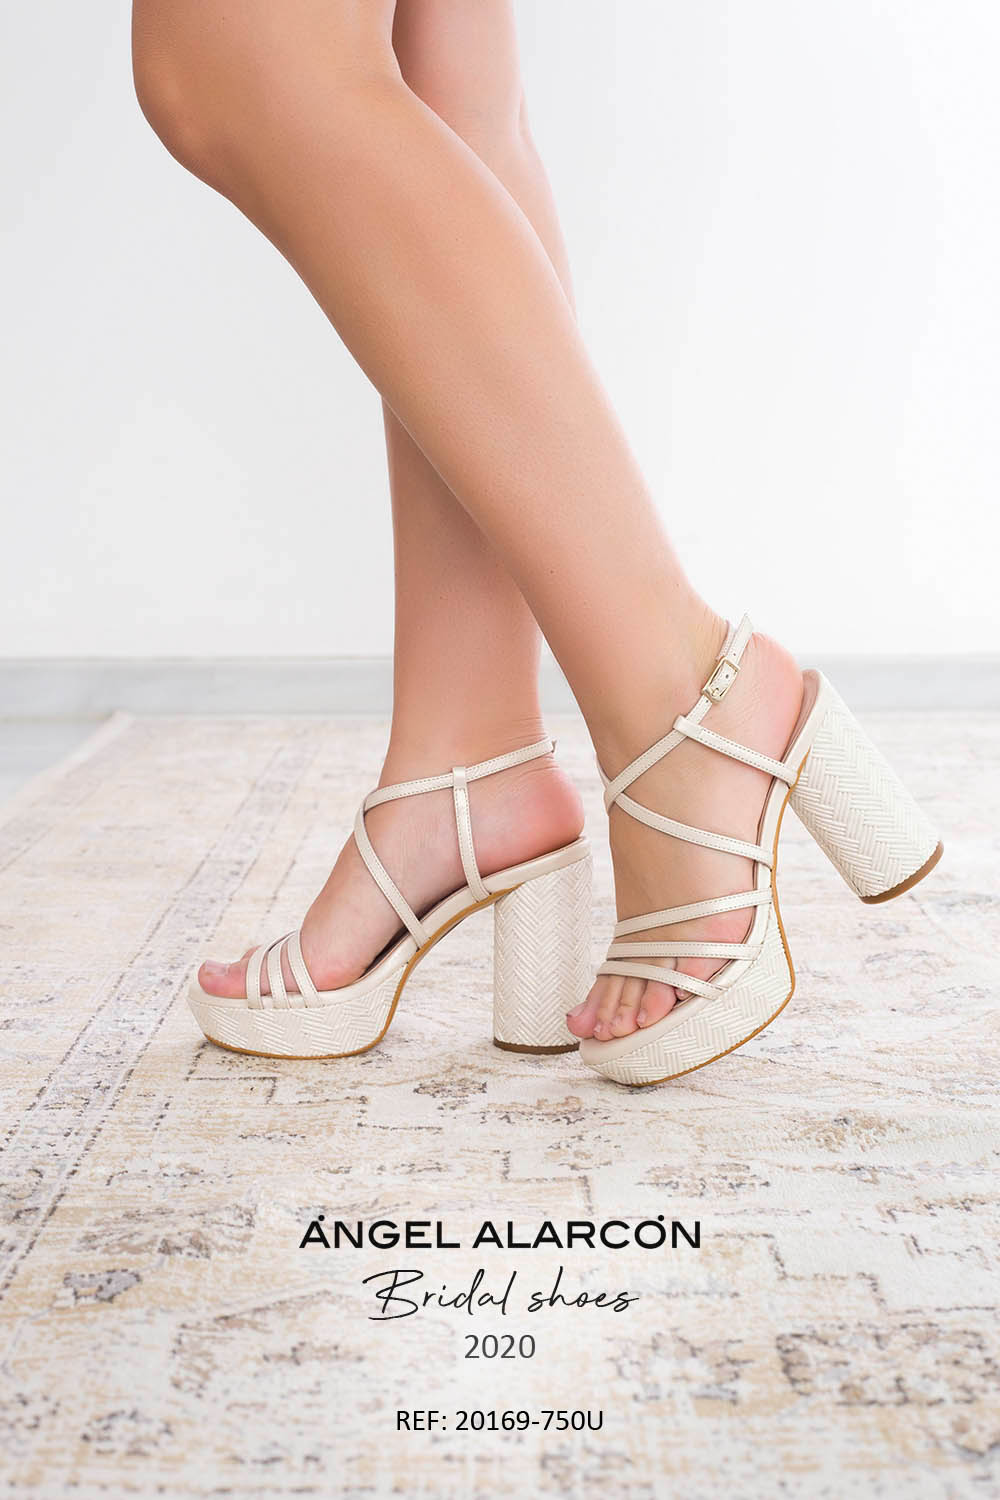 wedding shoes 2020 20169-750U ivory - wedding shoes 2020 20169-750U ivory. Comfortable women's wedding shoes by Angel Alarcon